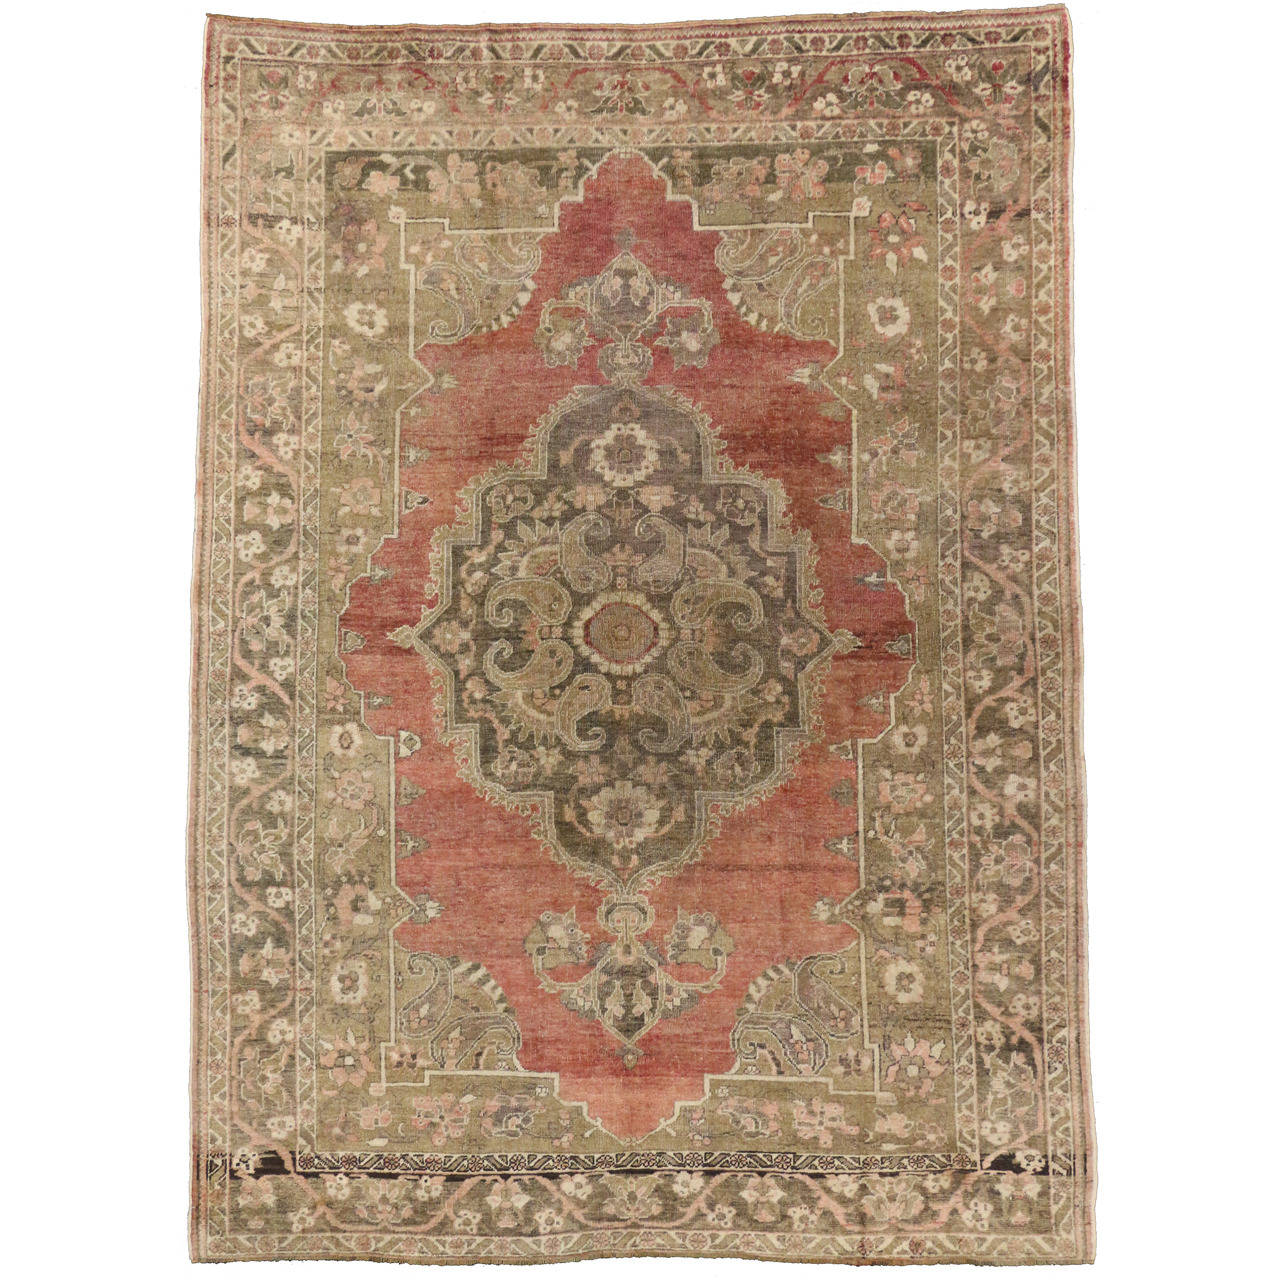 Oushak Rugs For Sale: Antique Turkish Oushak Rug With Modern Design In Soft